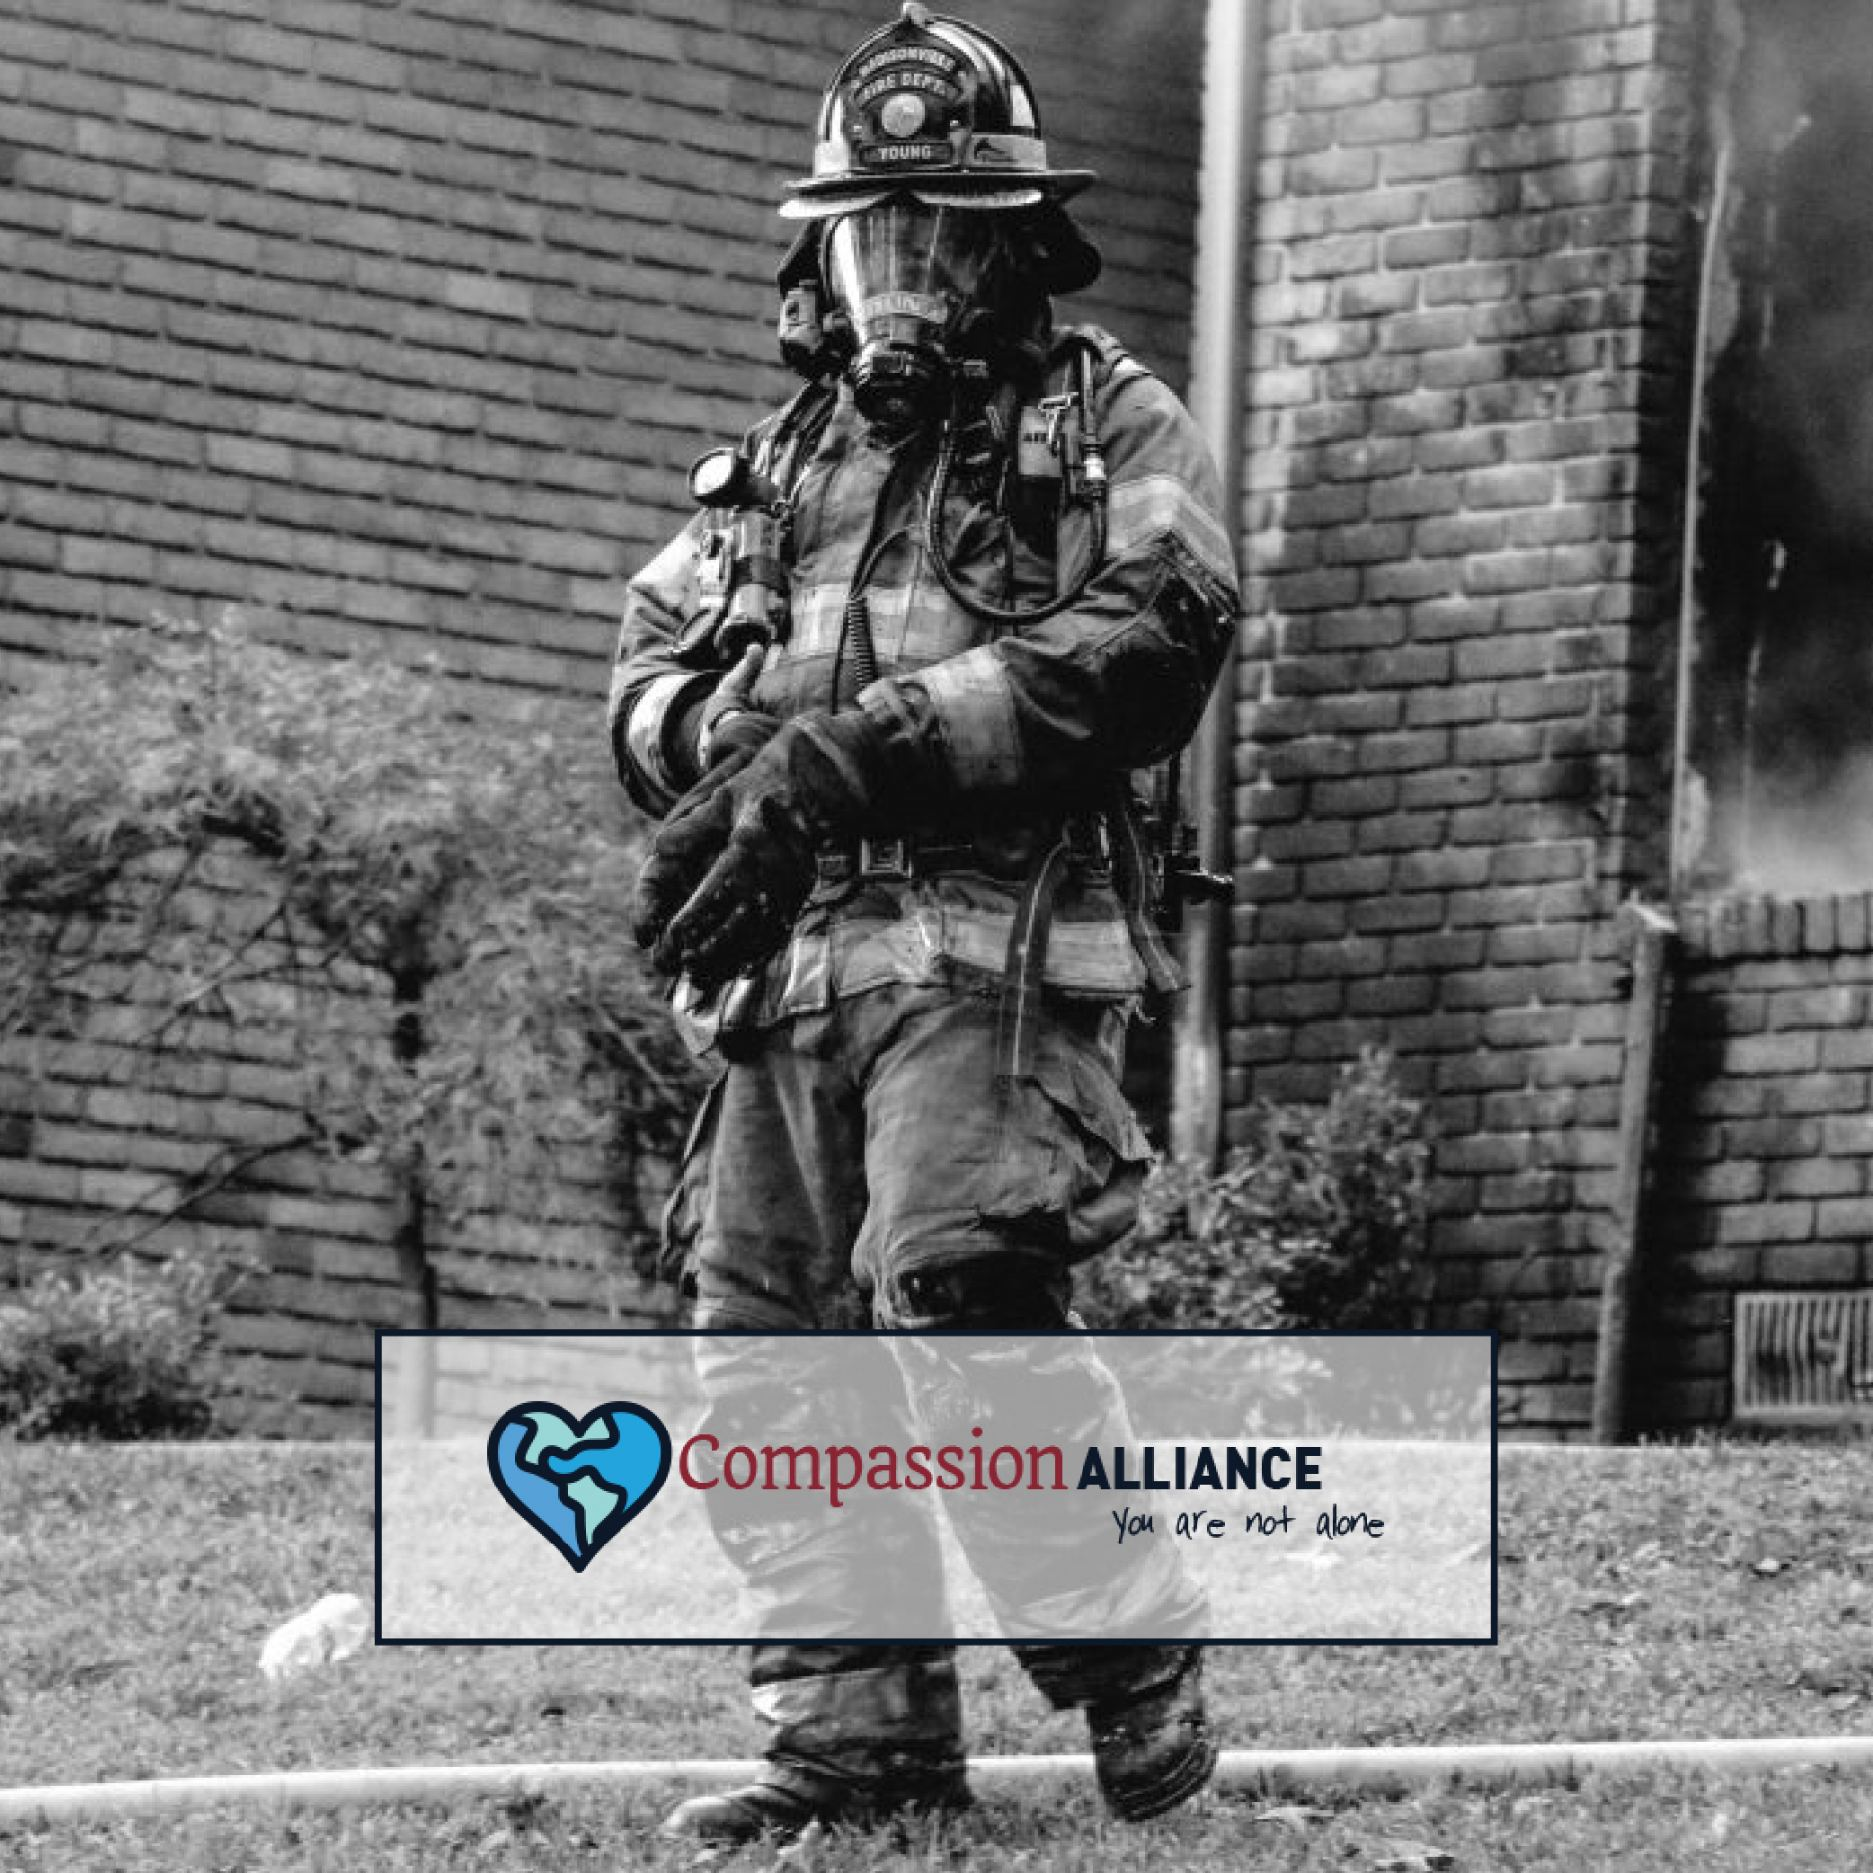 First Responders: You are not alone.